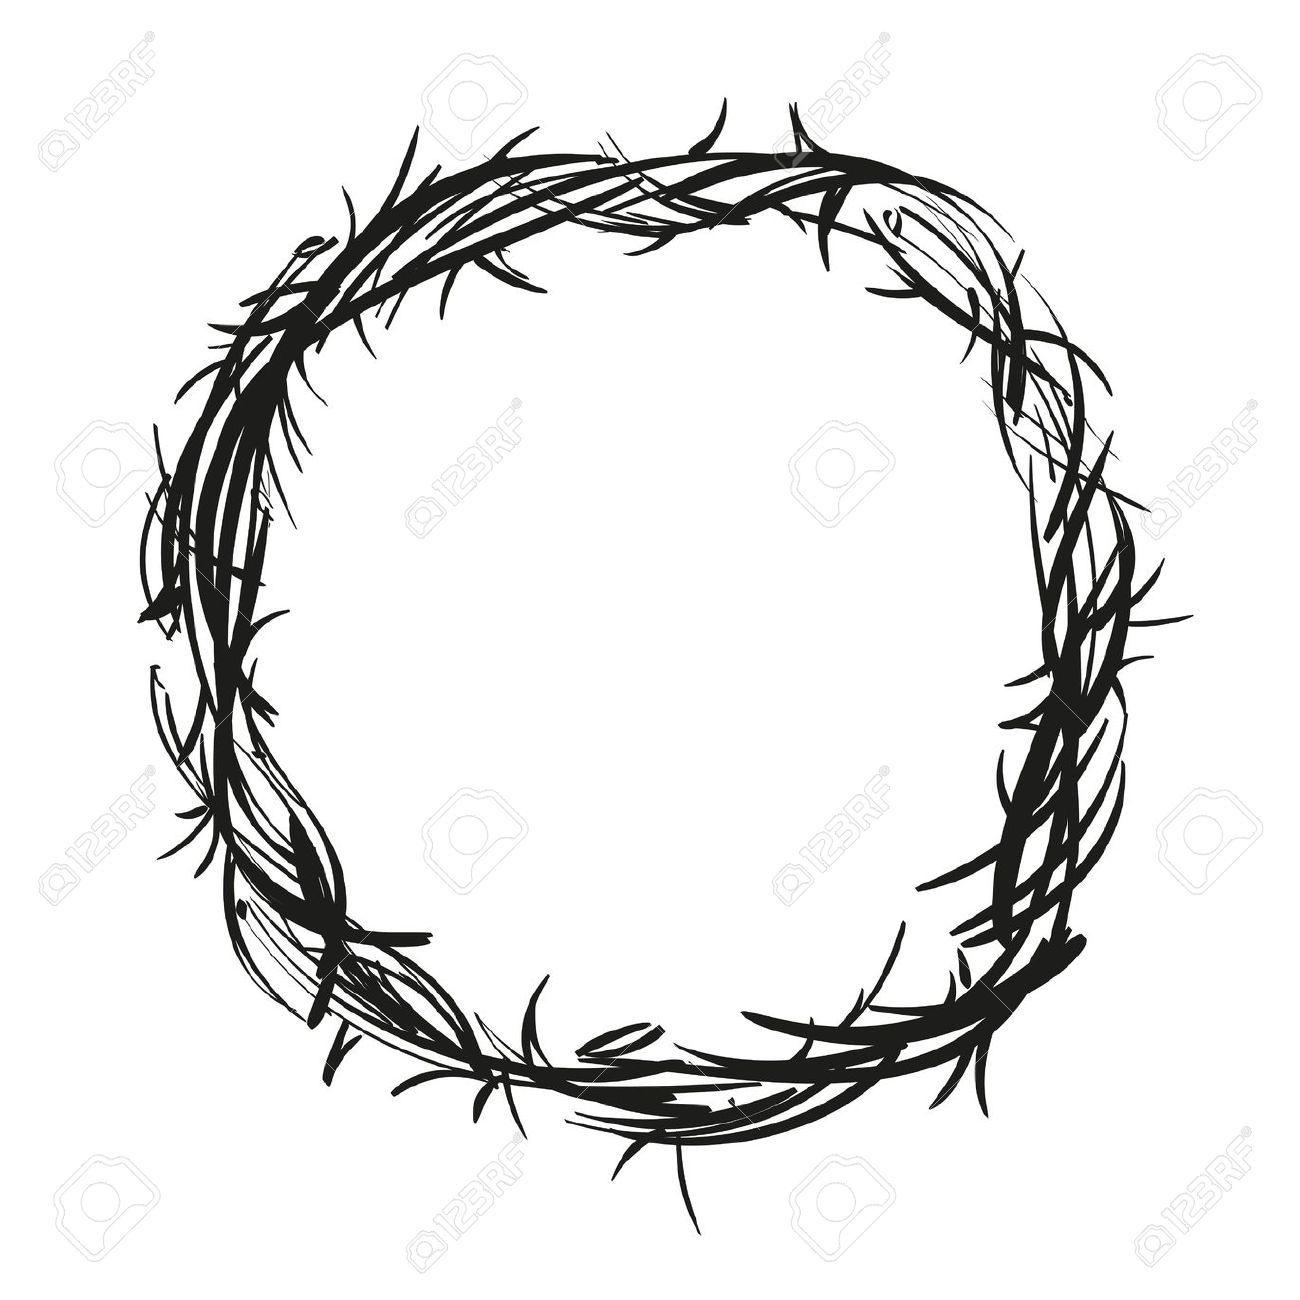 759 Crown Of Thorns Stock Illustrations, Cliparts And Royalty Free.